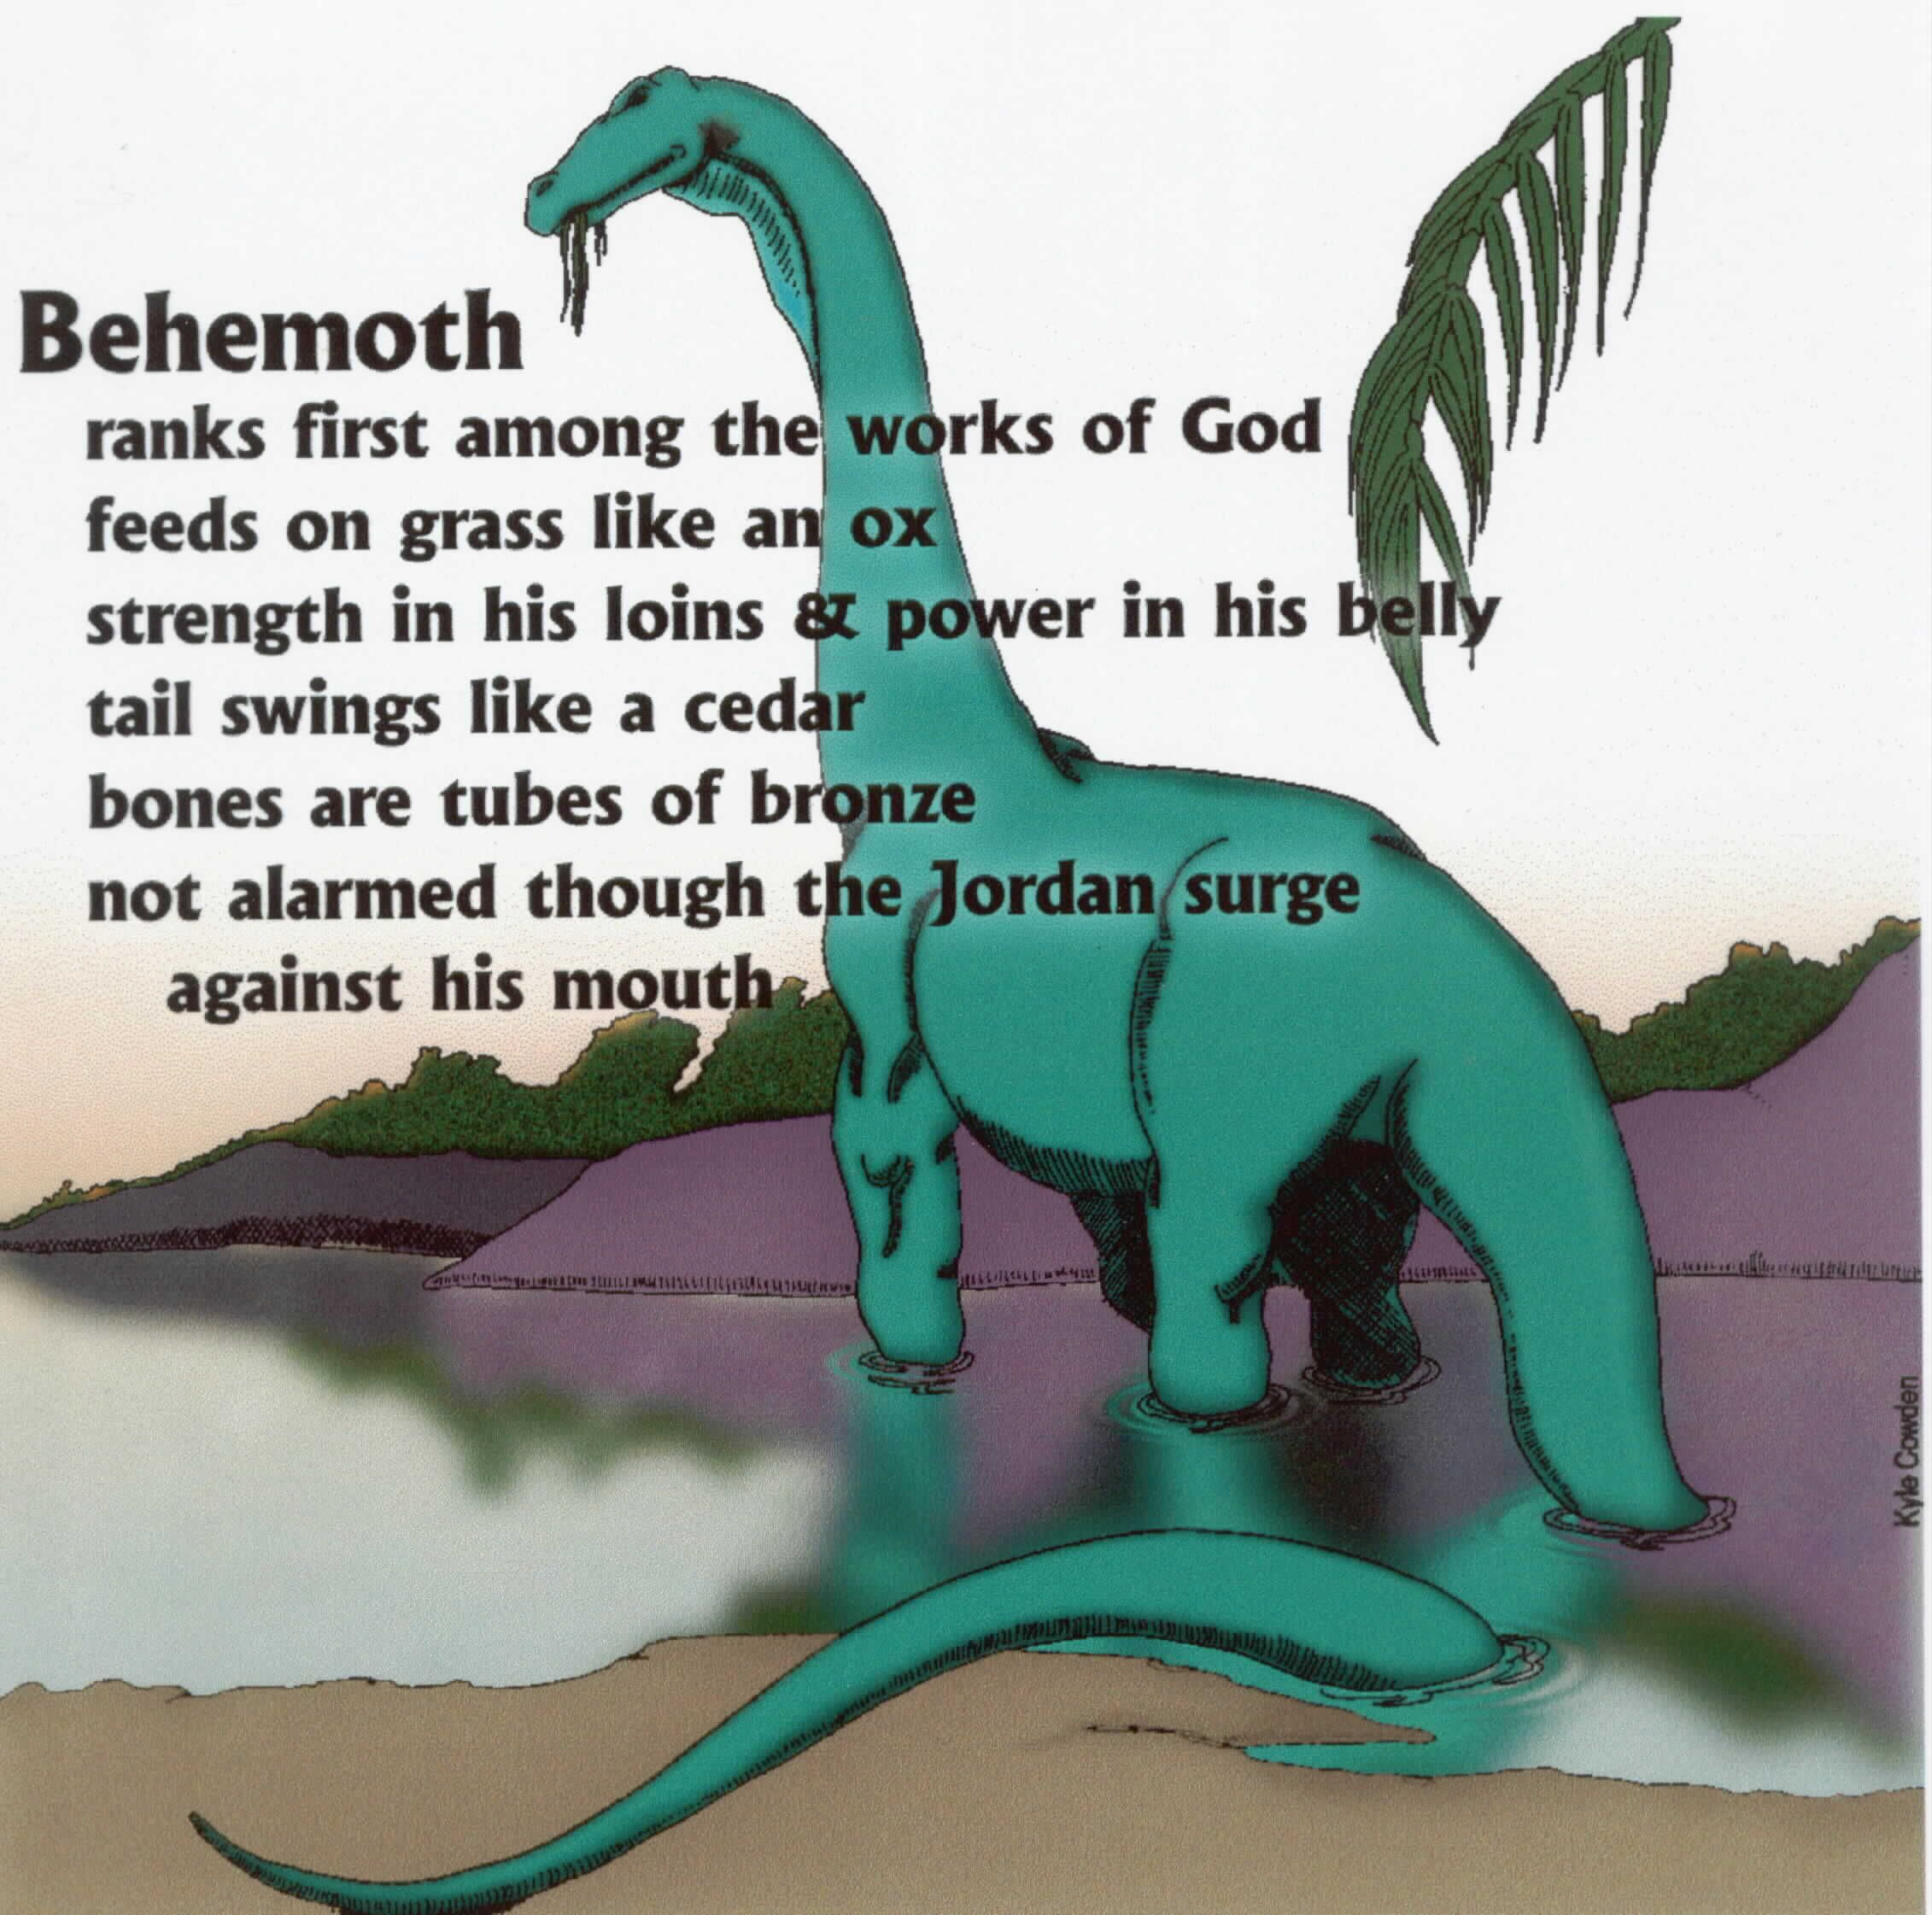 Why does the bible not mention dinosaurs?